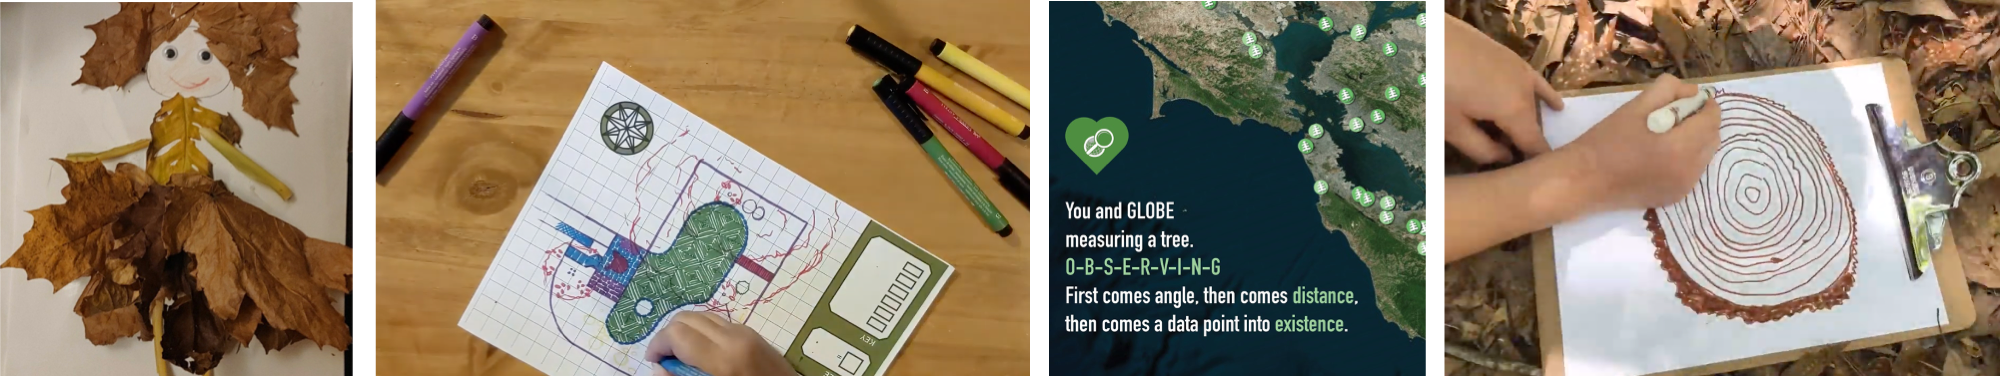 Composite of create activities, from left: art made with leaves, a map of a garden with trees, a tree poem, and a drawing of a tree cookie